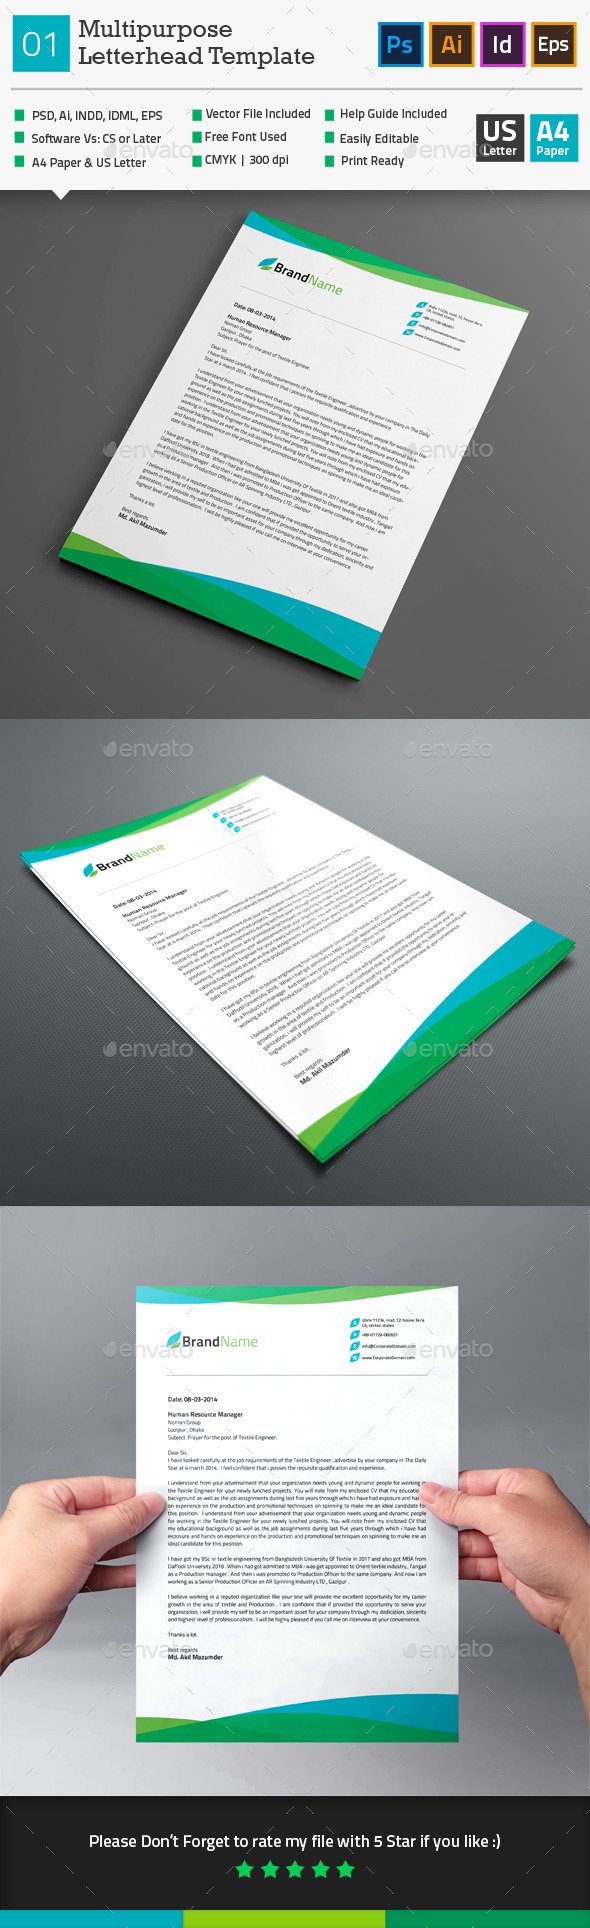 GraphicRiver Multipurpose Letterhead Template 01 10250236